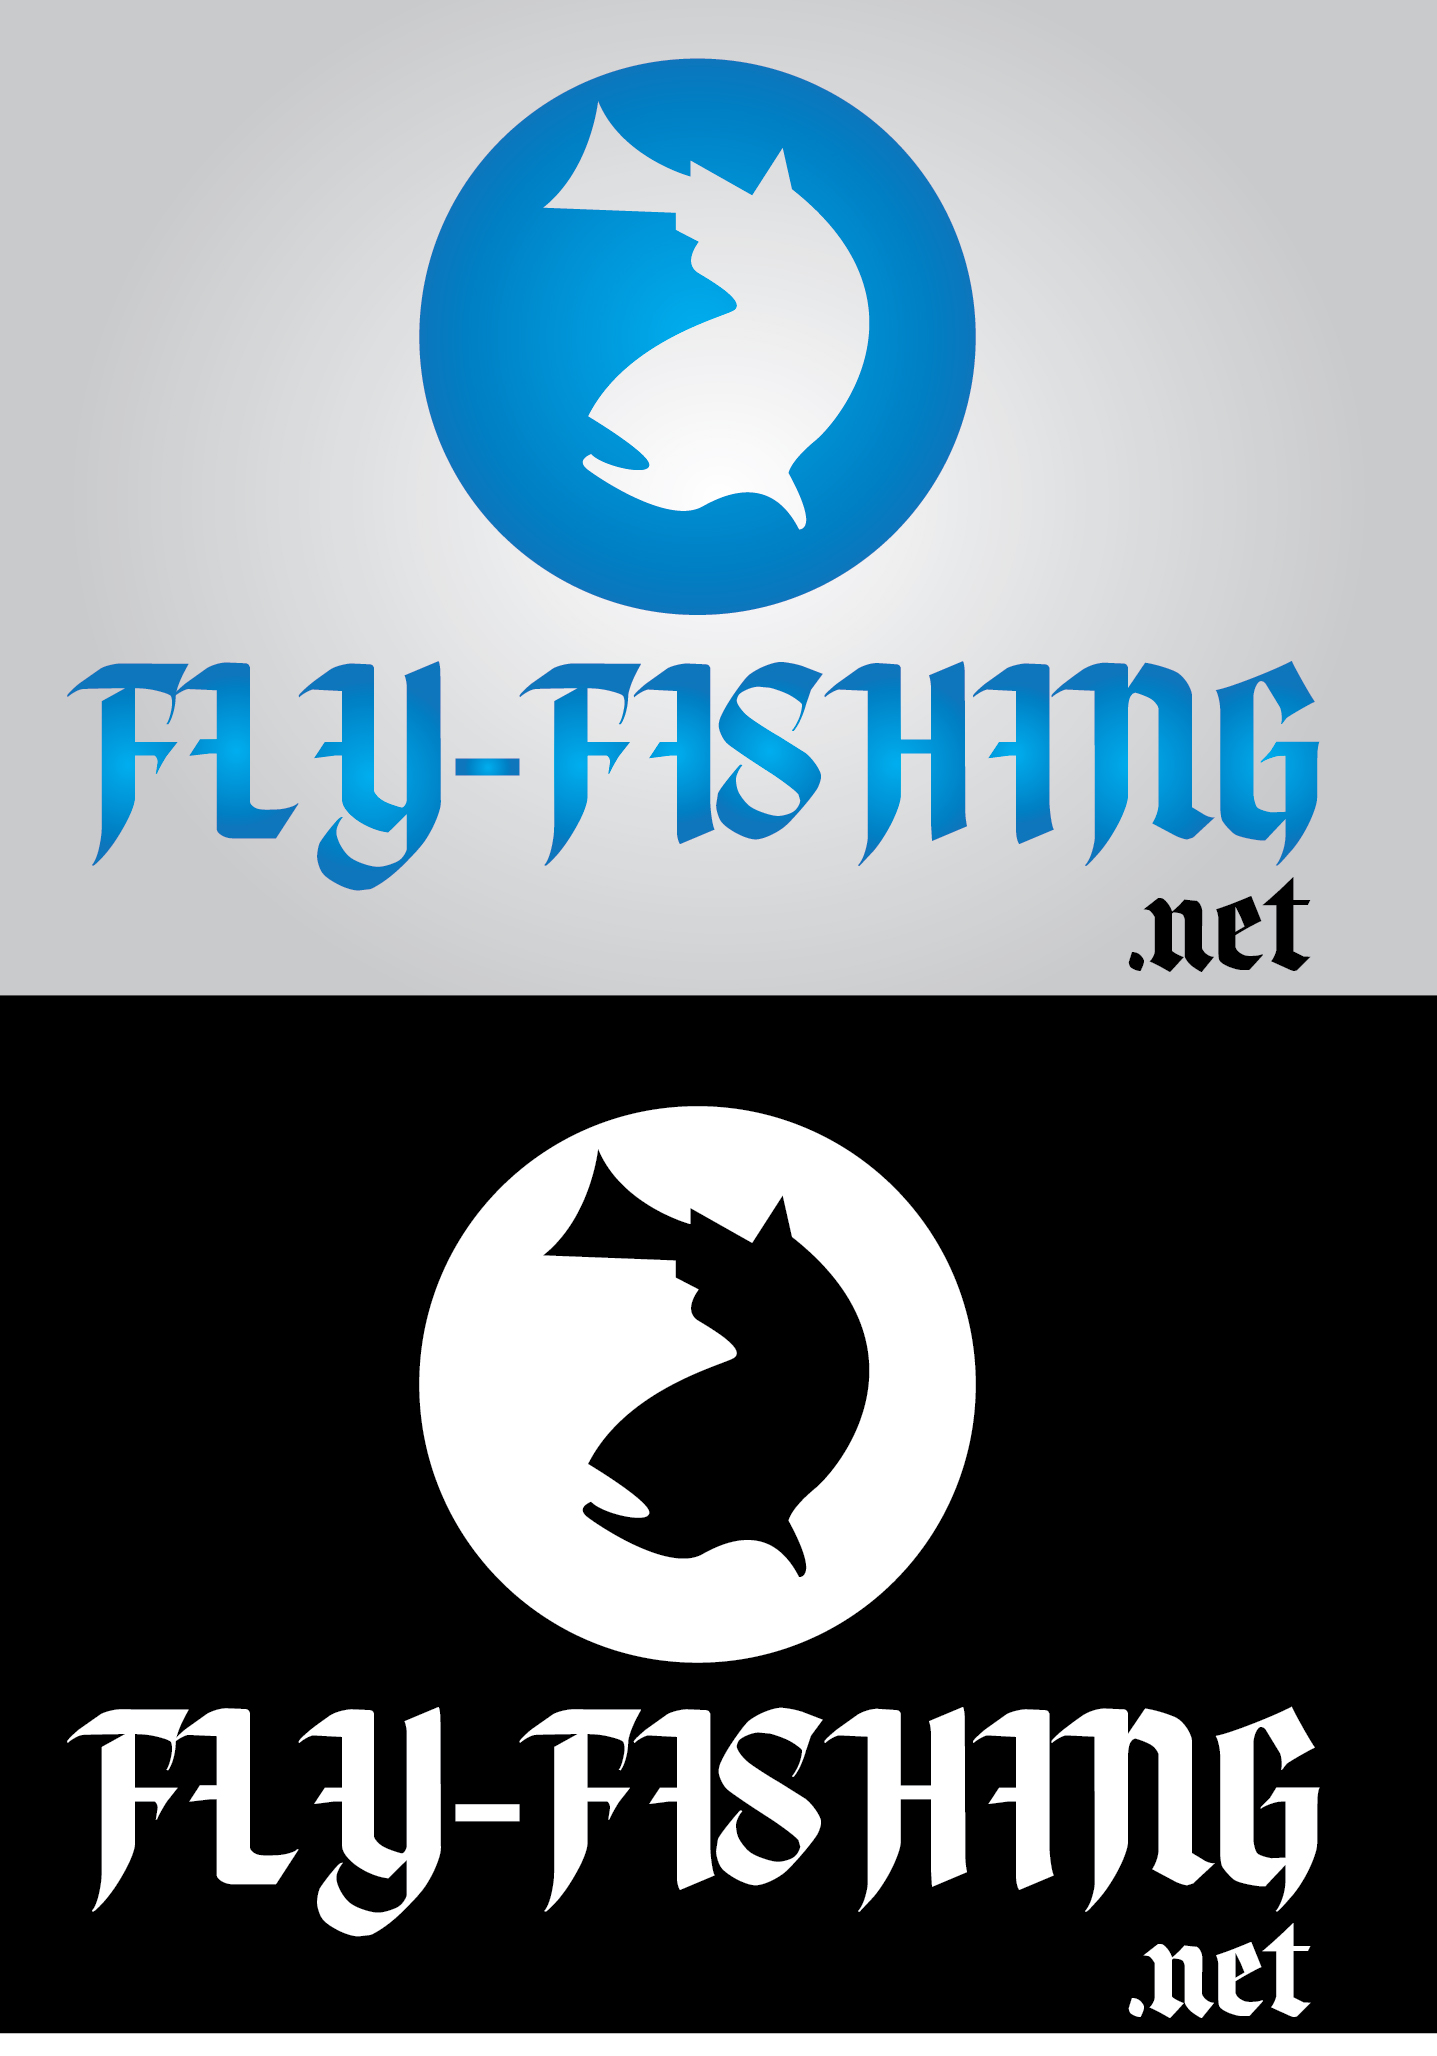 Logo Design by mediaproductionart - Entry No. 86 in the Logo Design Contest Artistic Logo Design for fly-fishing.net.